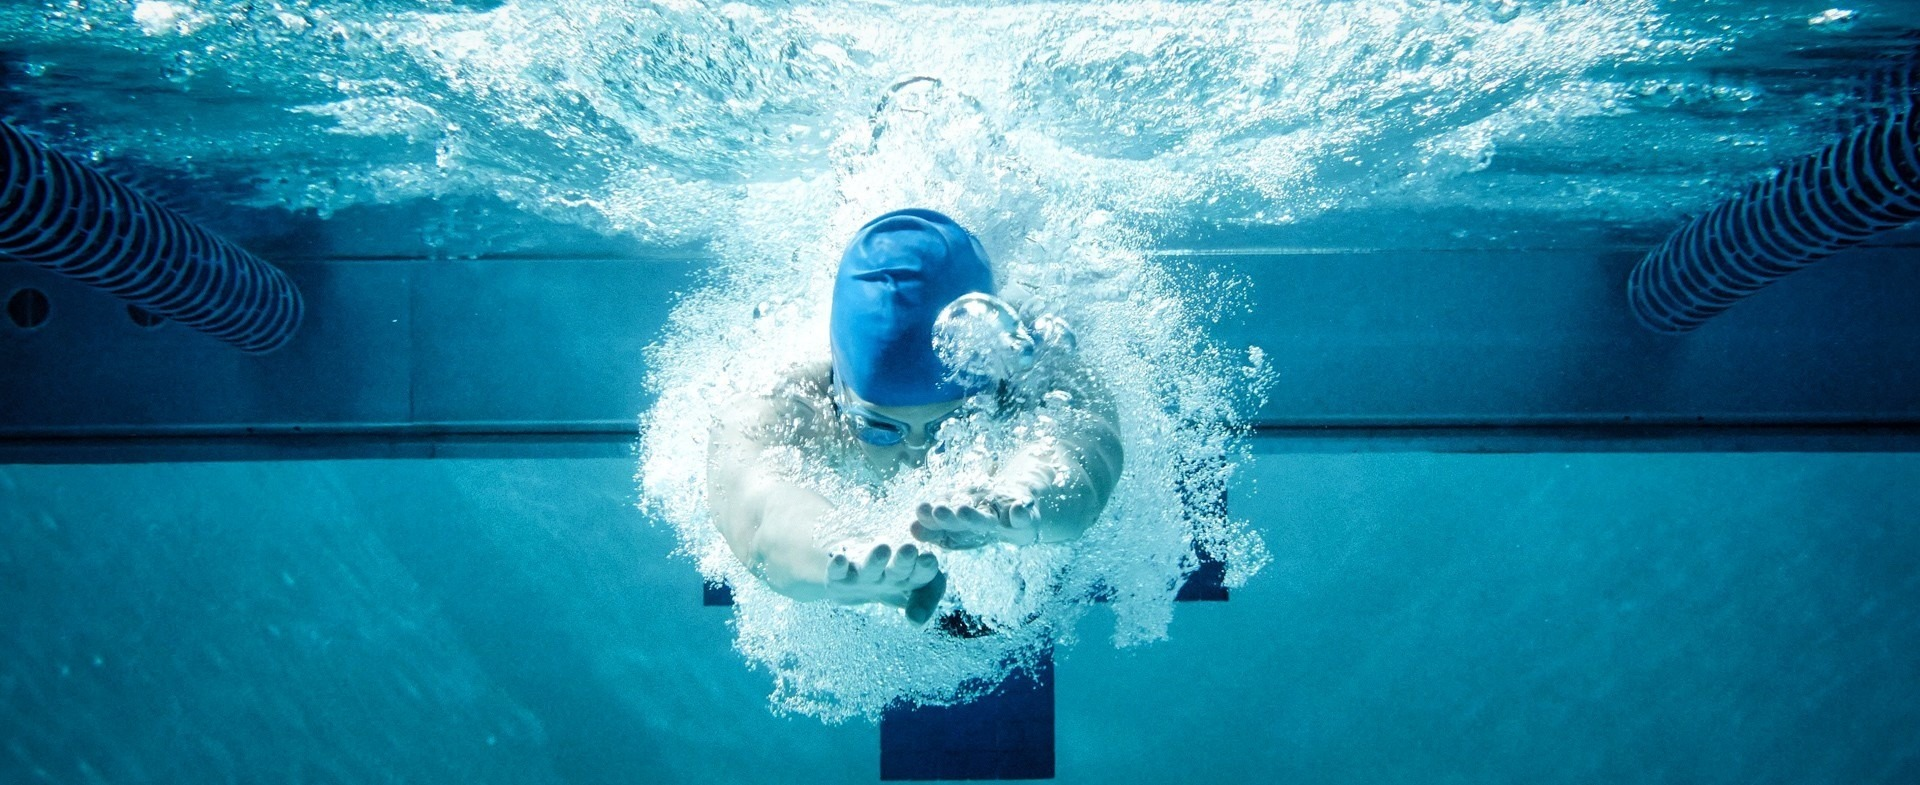 Person swimming in lap pool